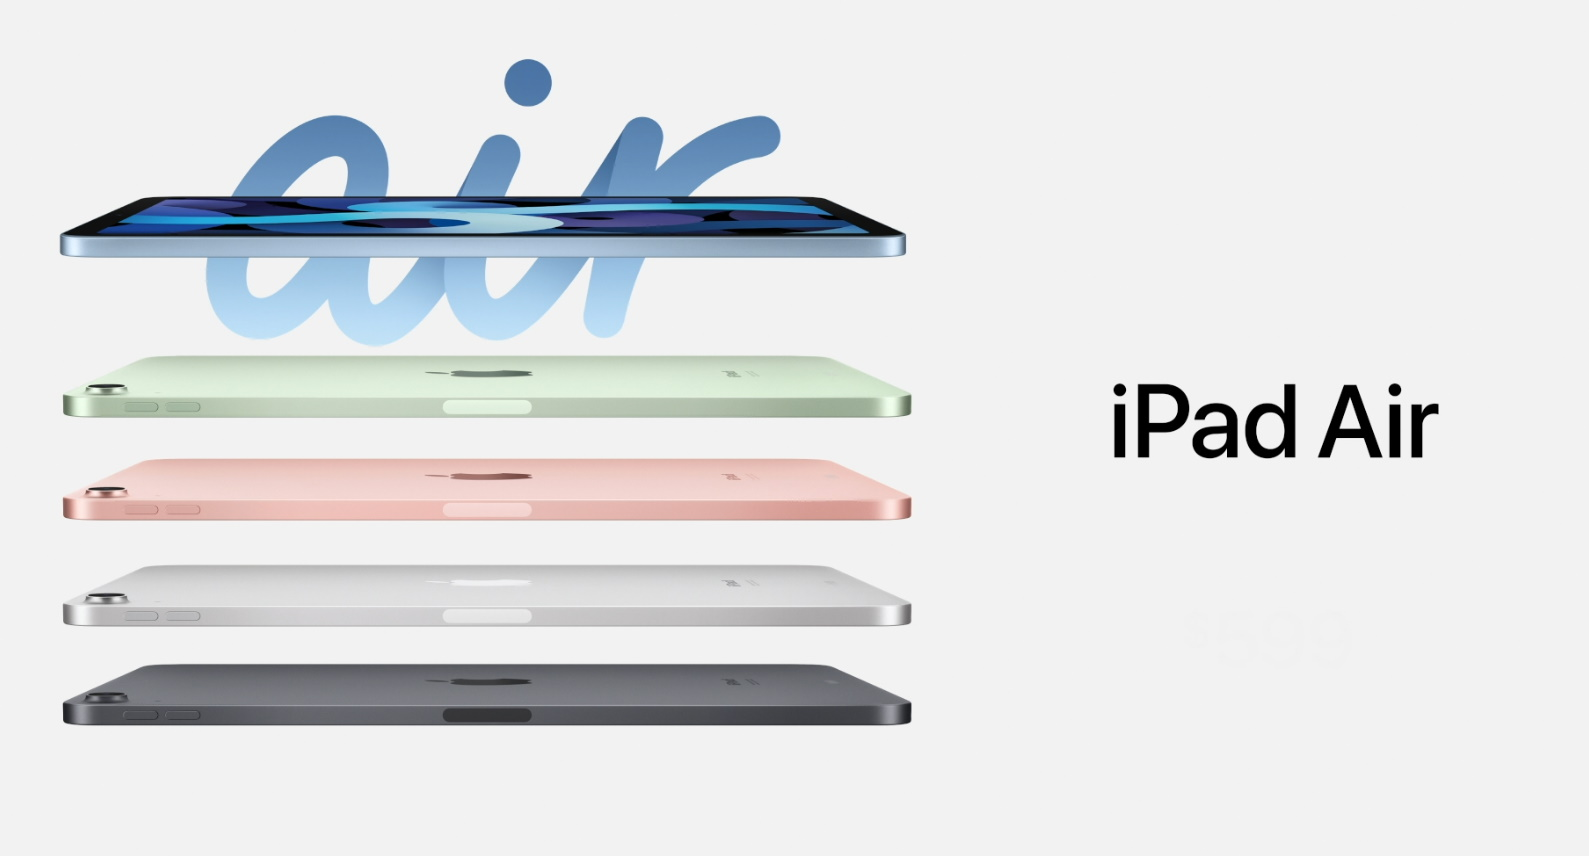 This is the new iPad Air, with Touch ID built into the power button –